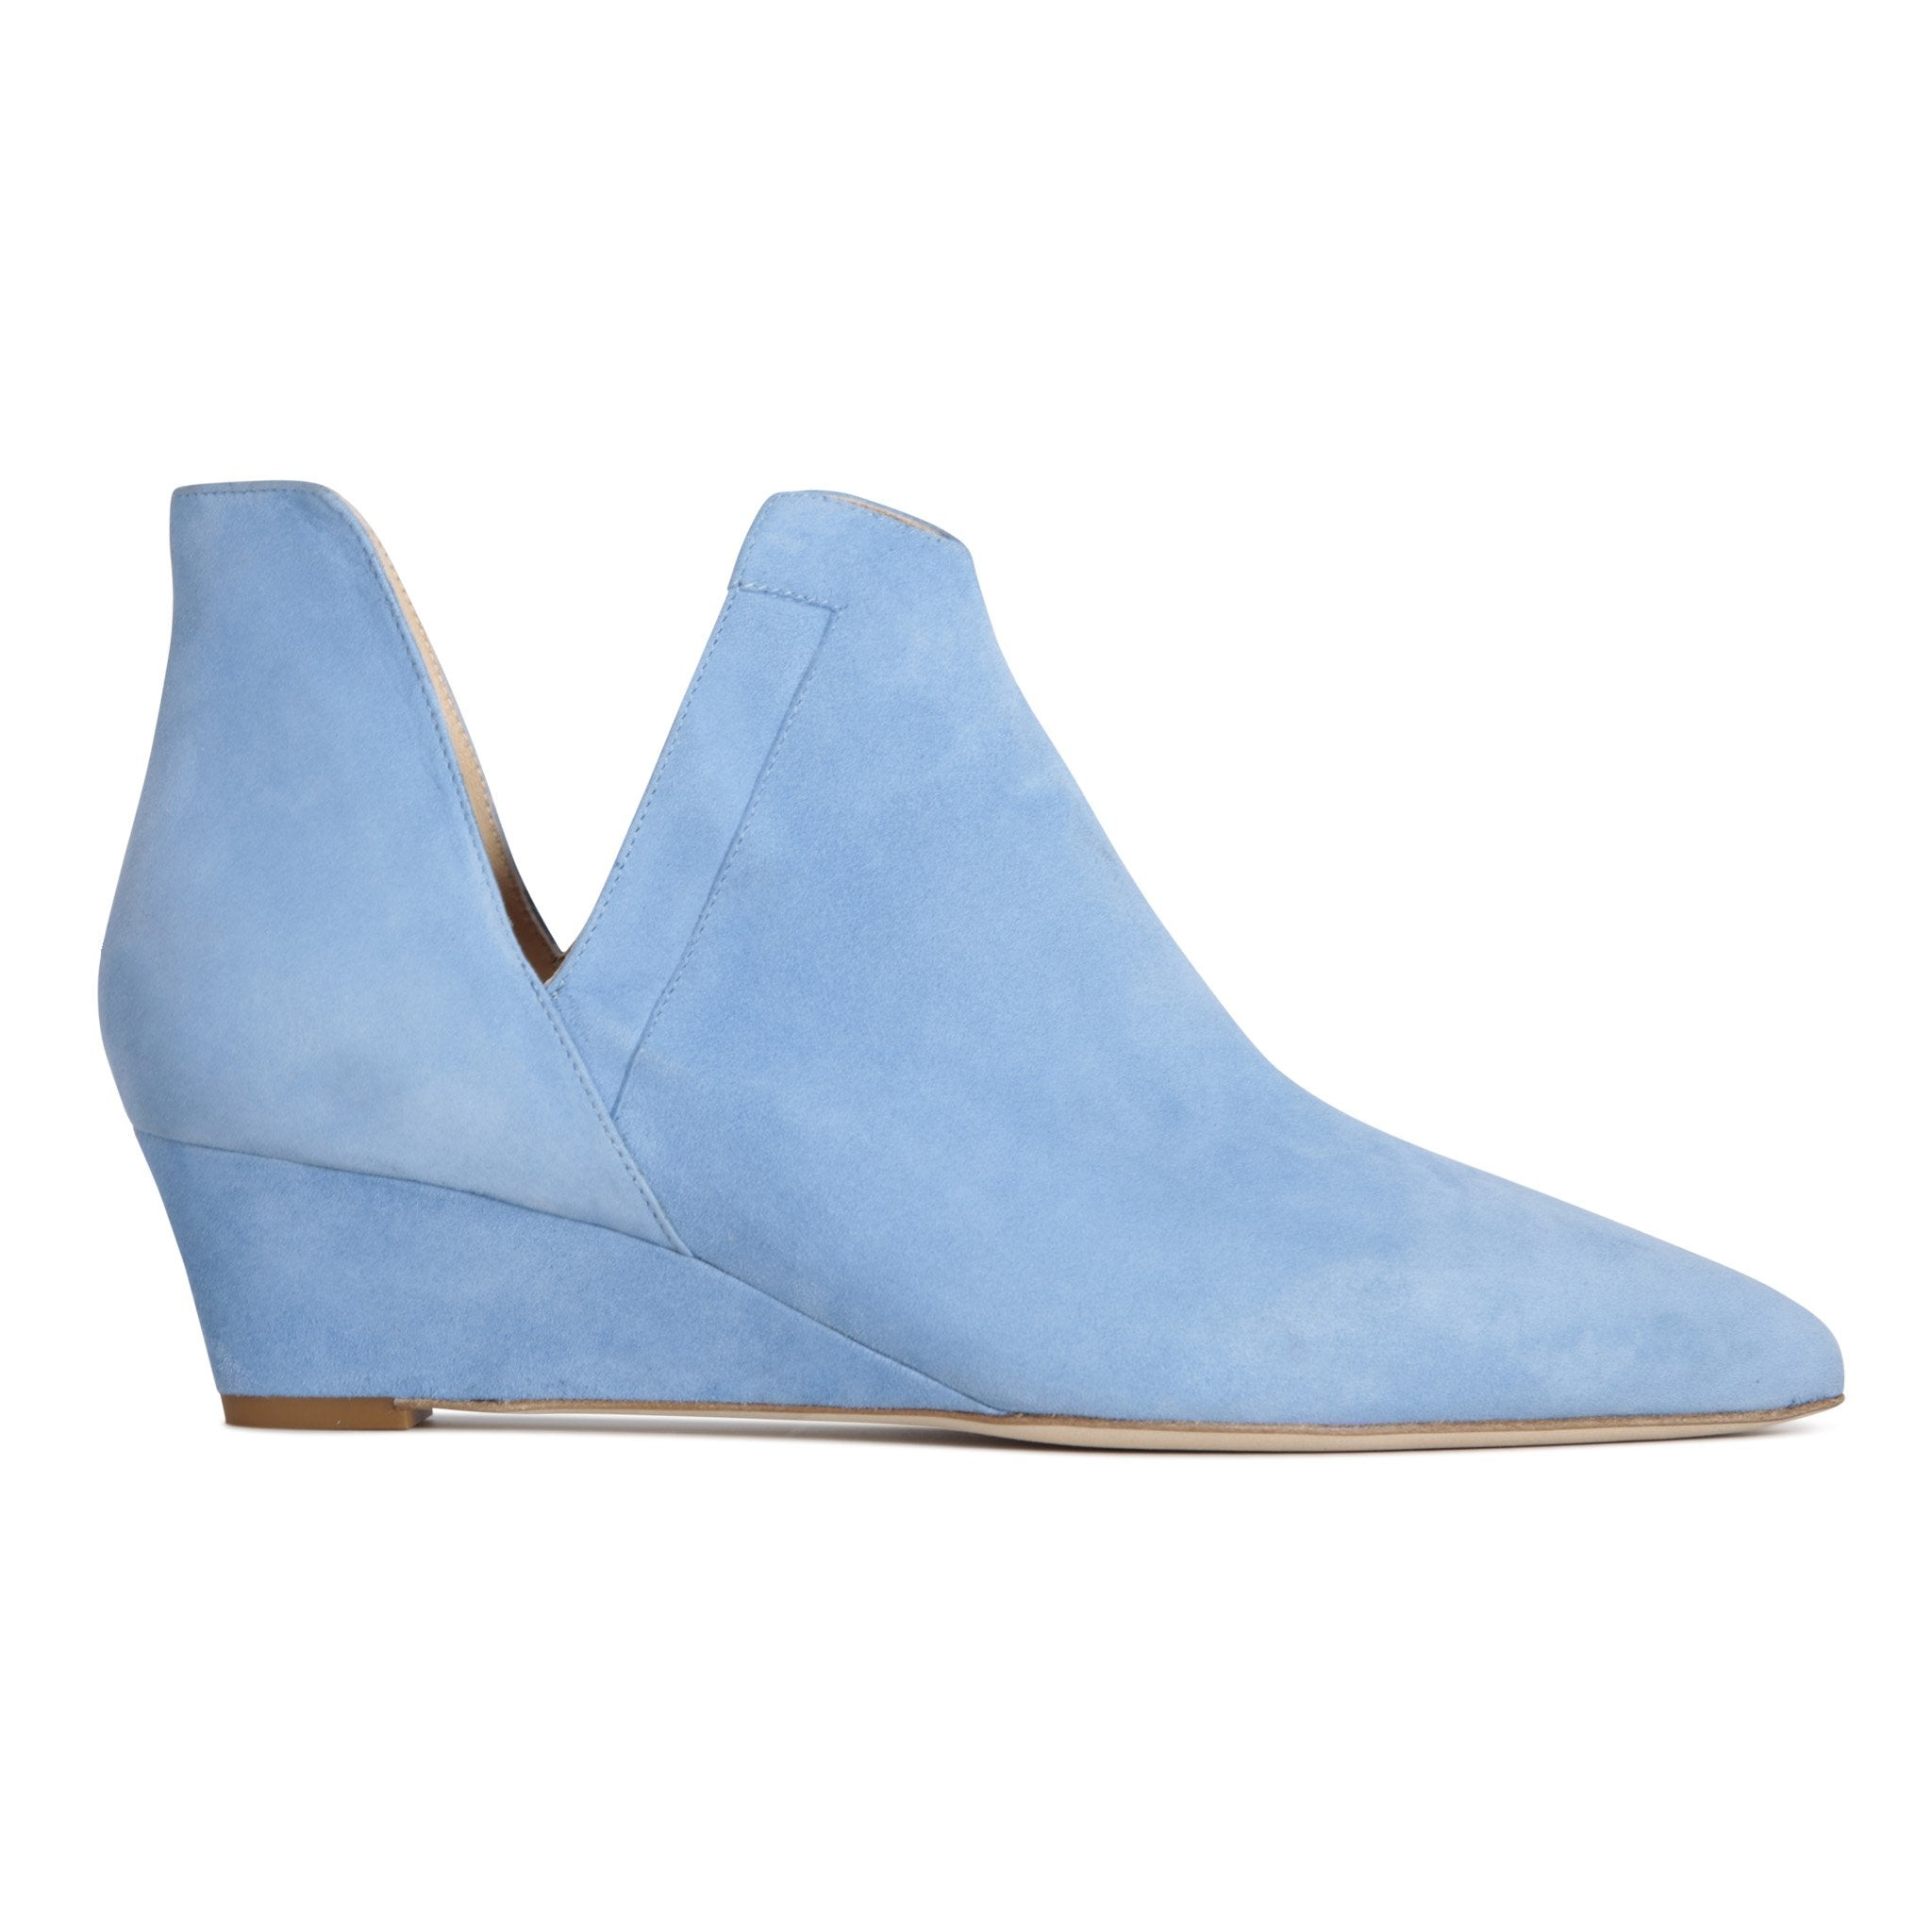 SYRENE - Velukid Bambina Blue, VIAJIYU - Women's Hand Made Sustainable Luxury Shoes. Made in Italy. Made to Order.